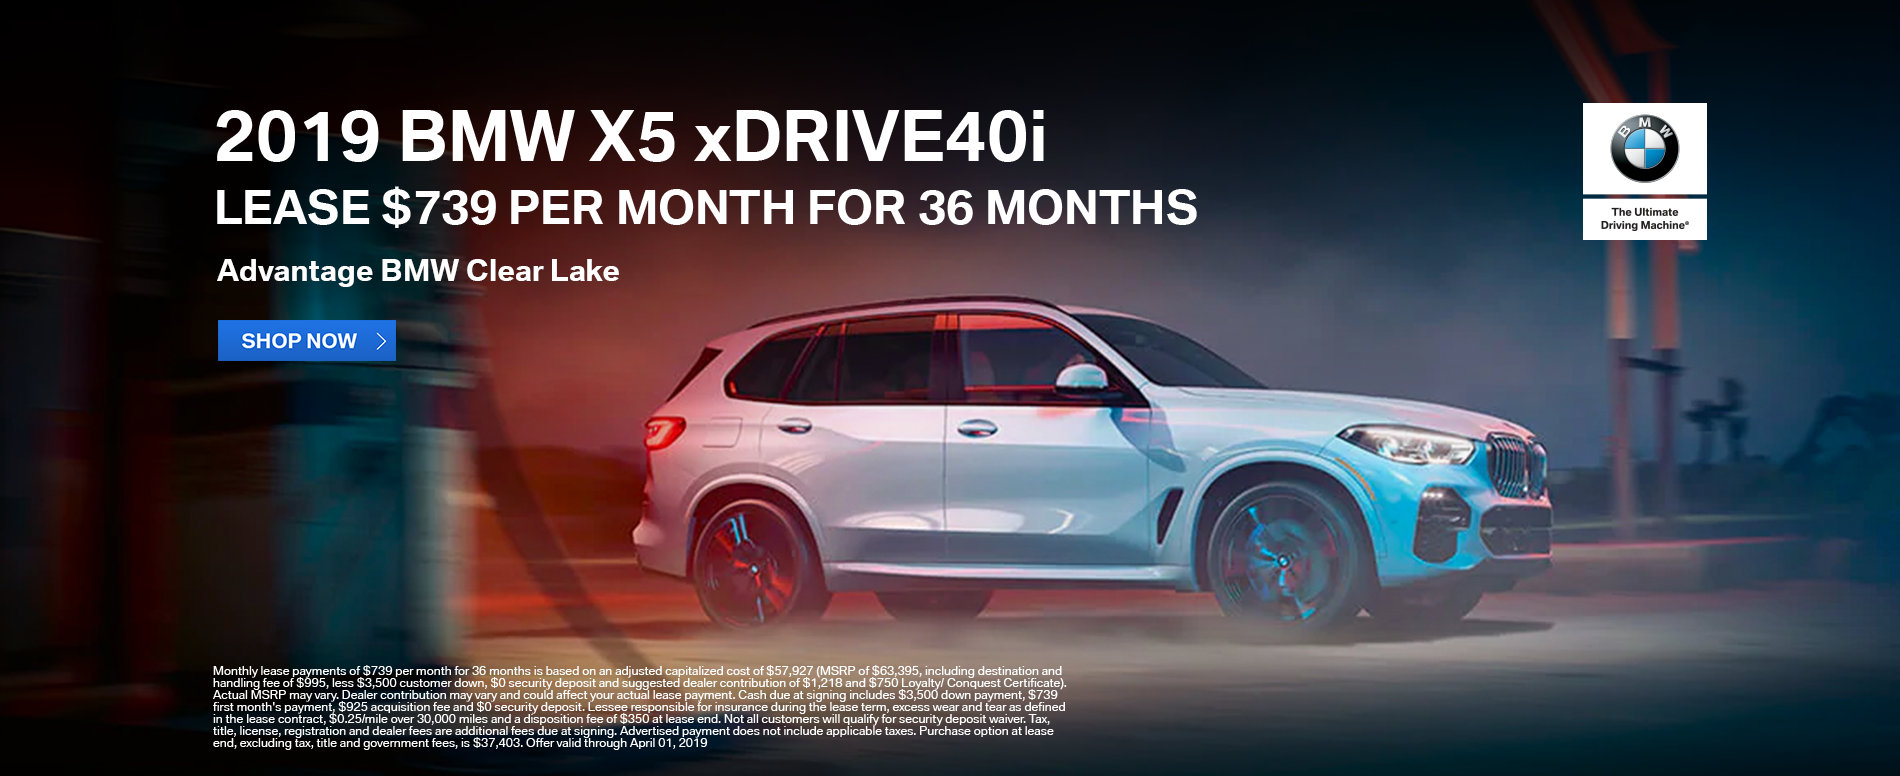 lease-2019-bmw-x5-xdrive40i-for-739-per-month-clear-lake